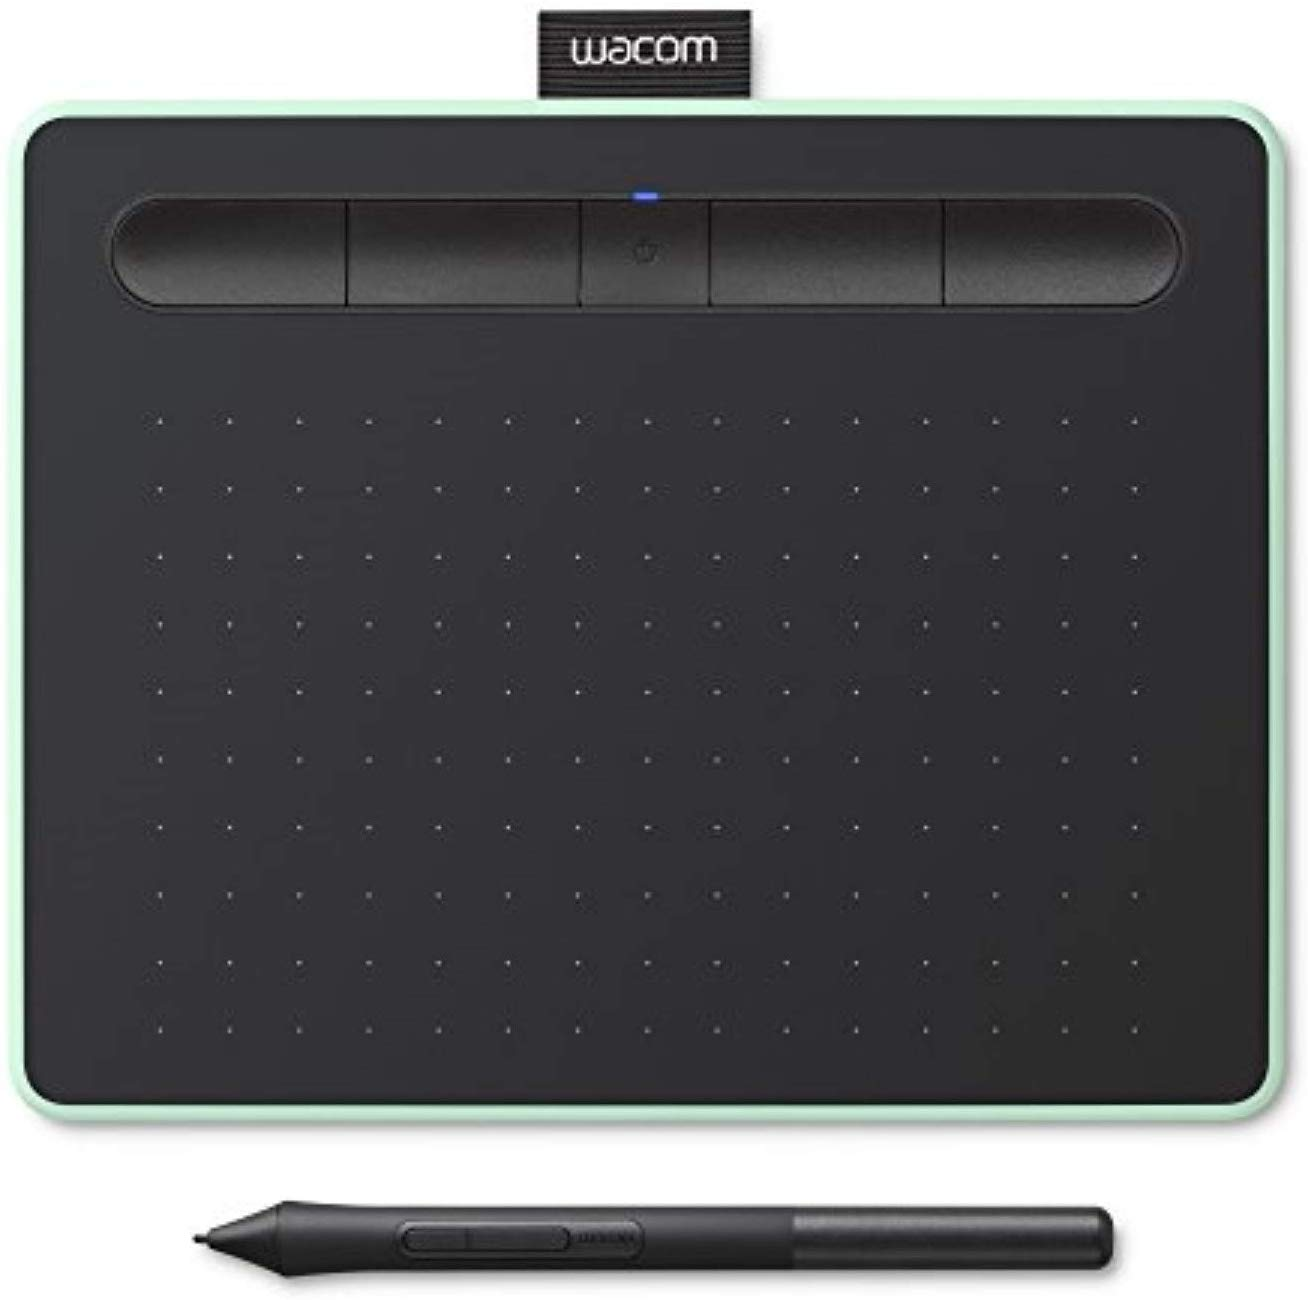 Wacom Intuos S Pistachio, Bluetooth Pen Tablet – Wireless Graphic Tablet for Painting, Sketching and Photo Retouching